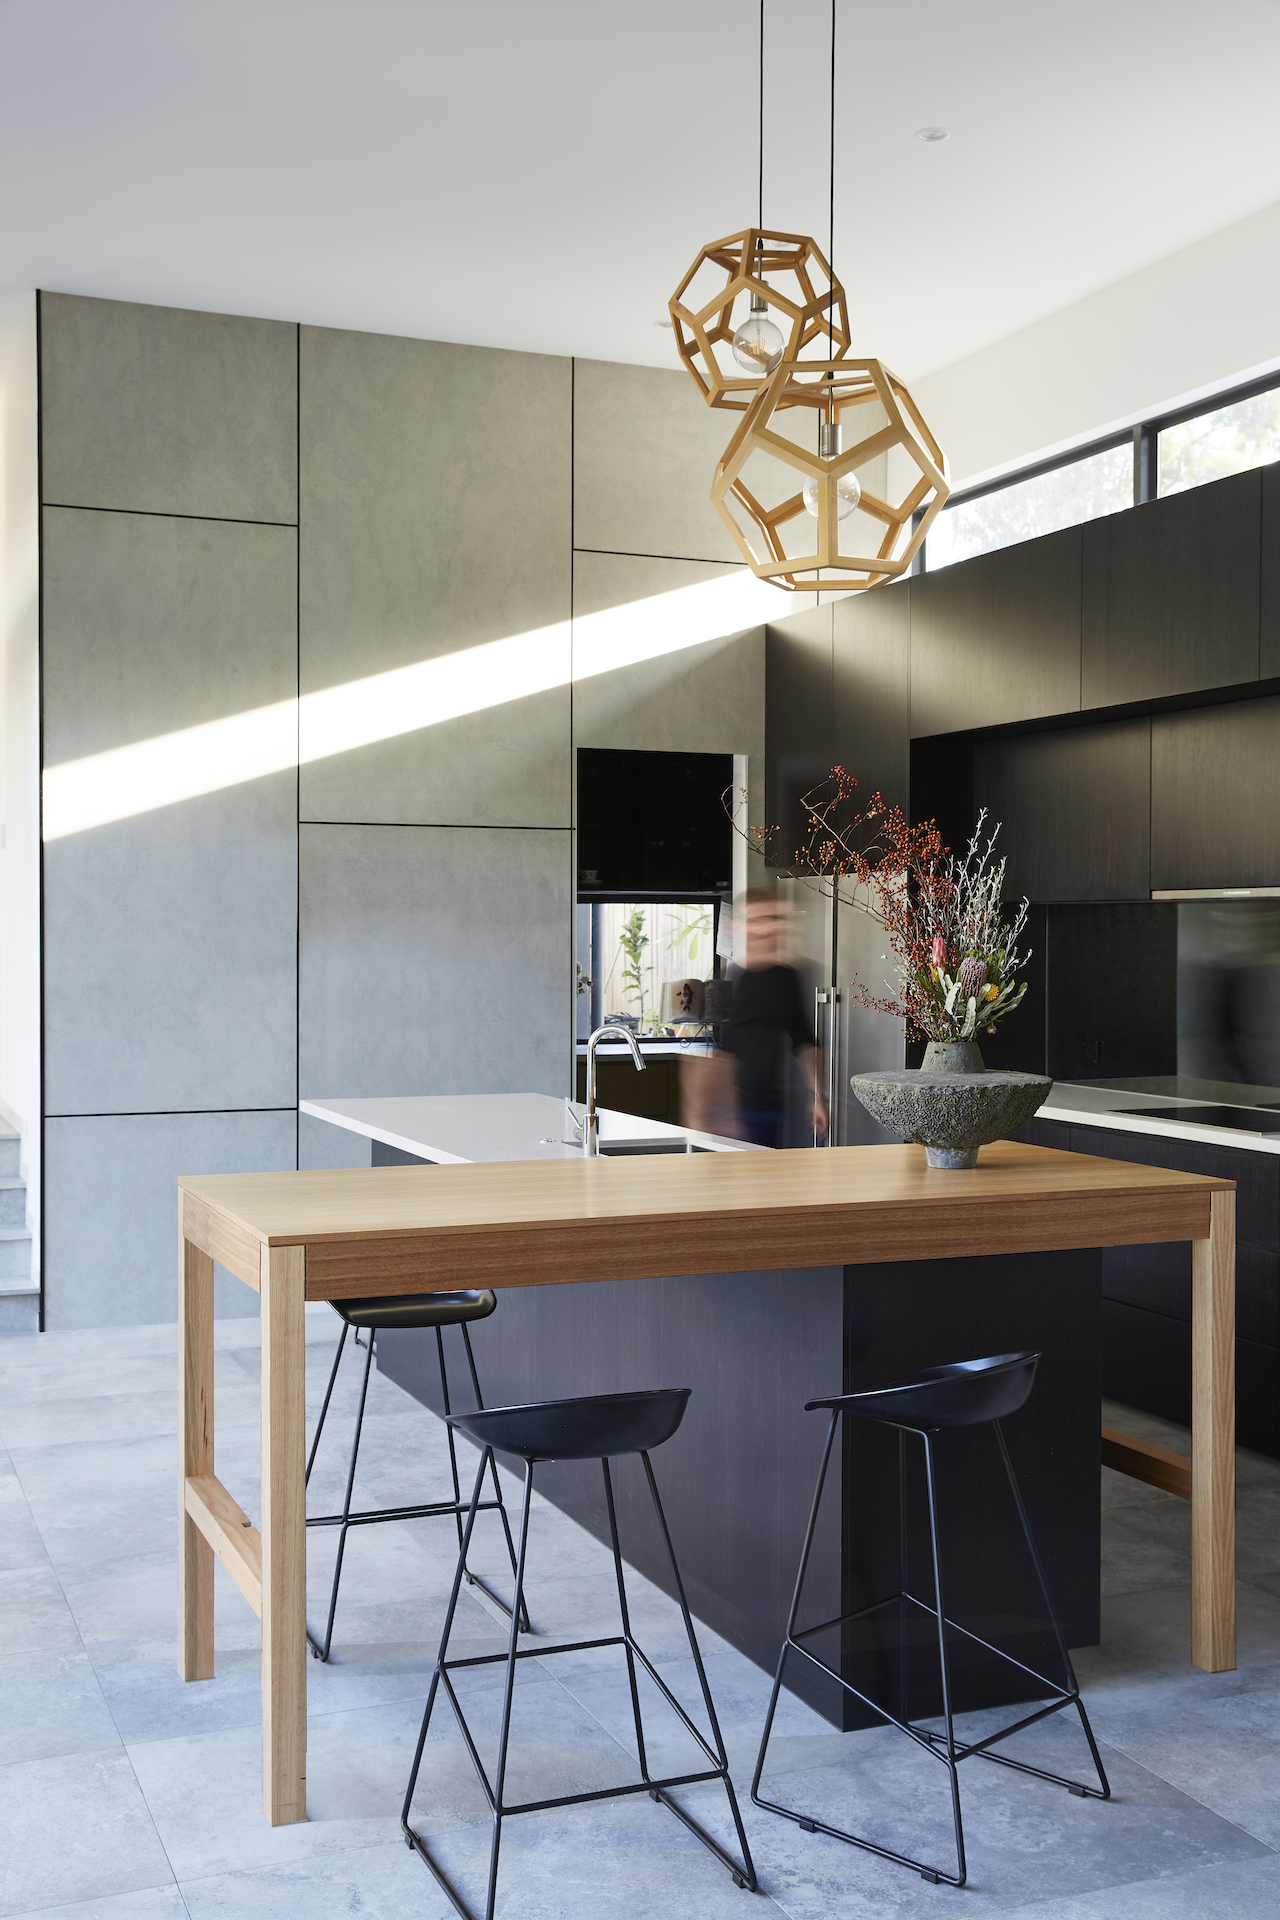 Geometric lines are incorporated throughout the kitchen space.